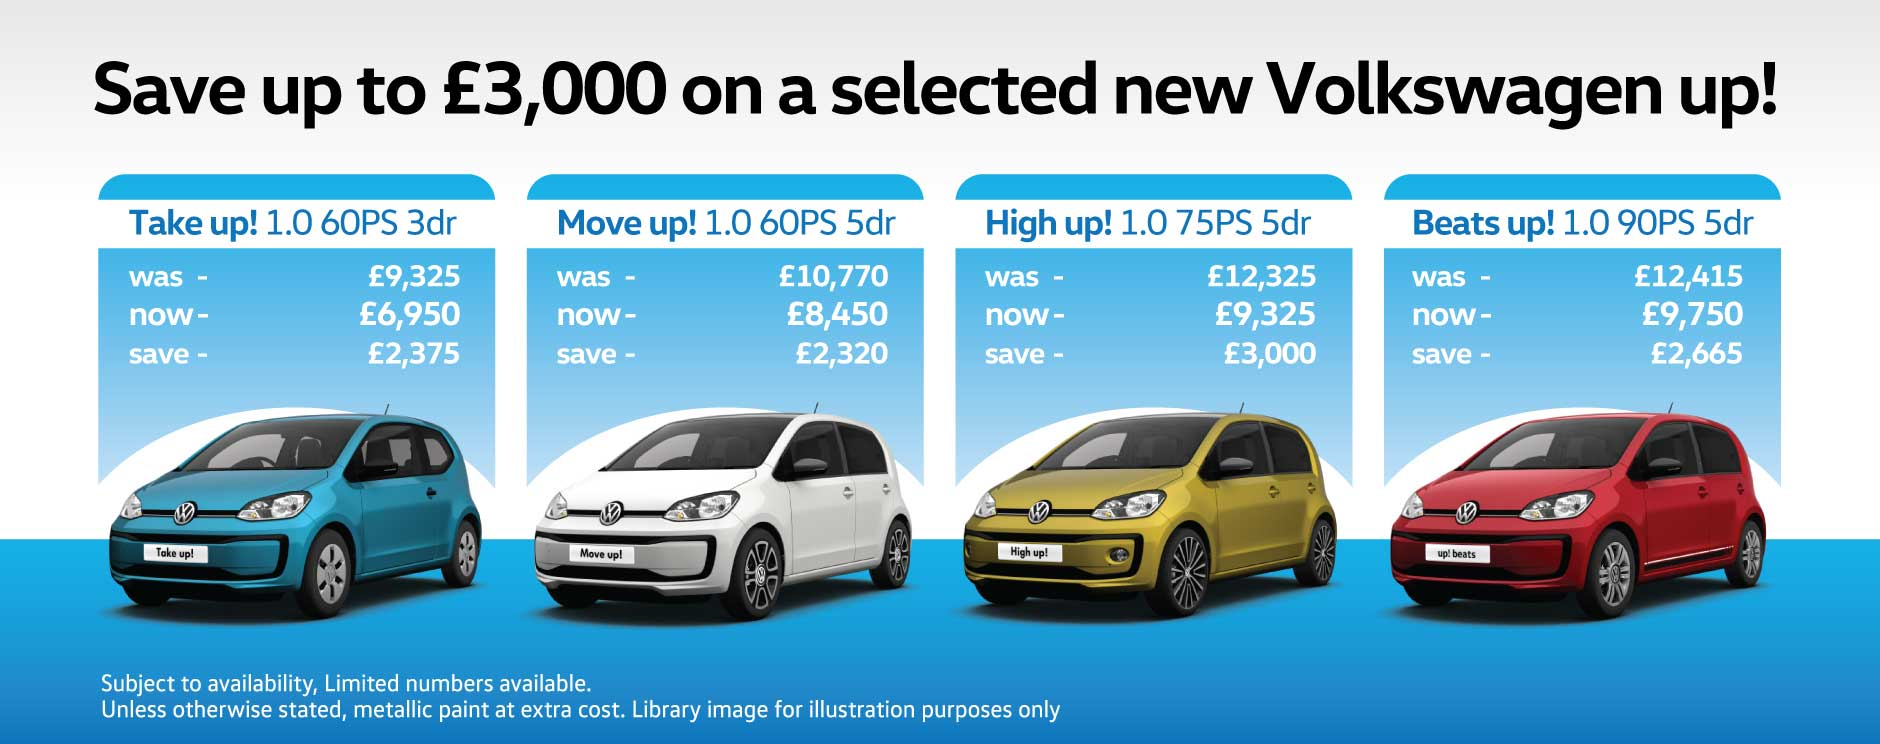 Volkswagen Up Cash Price BB